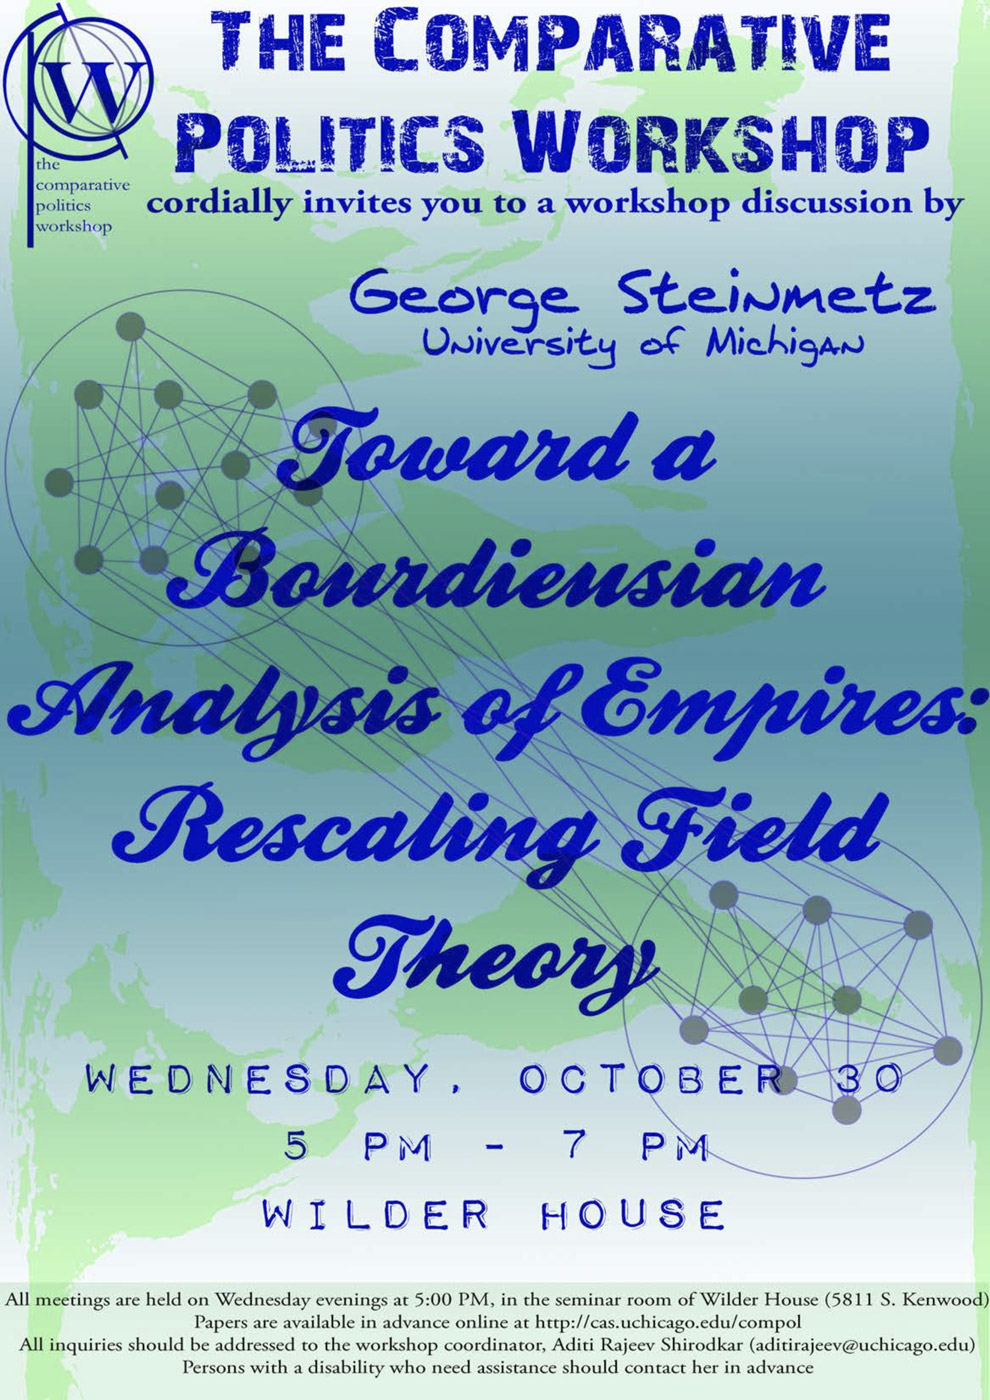 event poster for George Steinmetz, Toward a Bourdieusian Analysis of Empires: Rescaling Field Theory